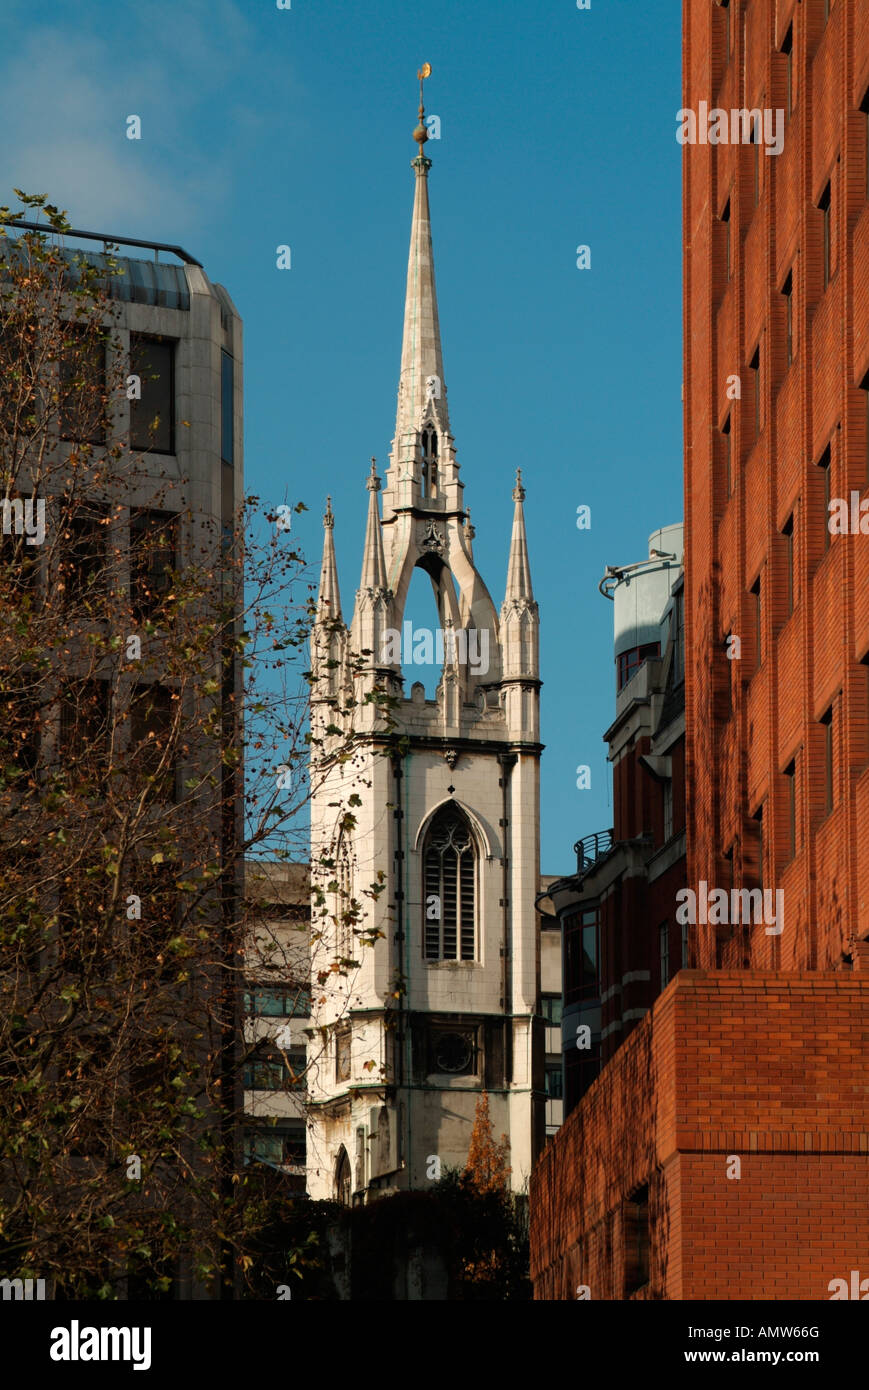 The tower and spire of the church of St Dunstan in the East, London - Stock Image